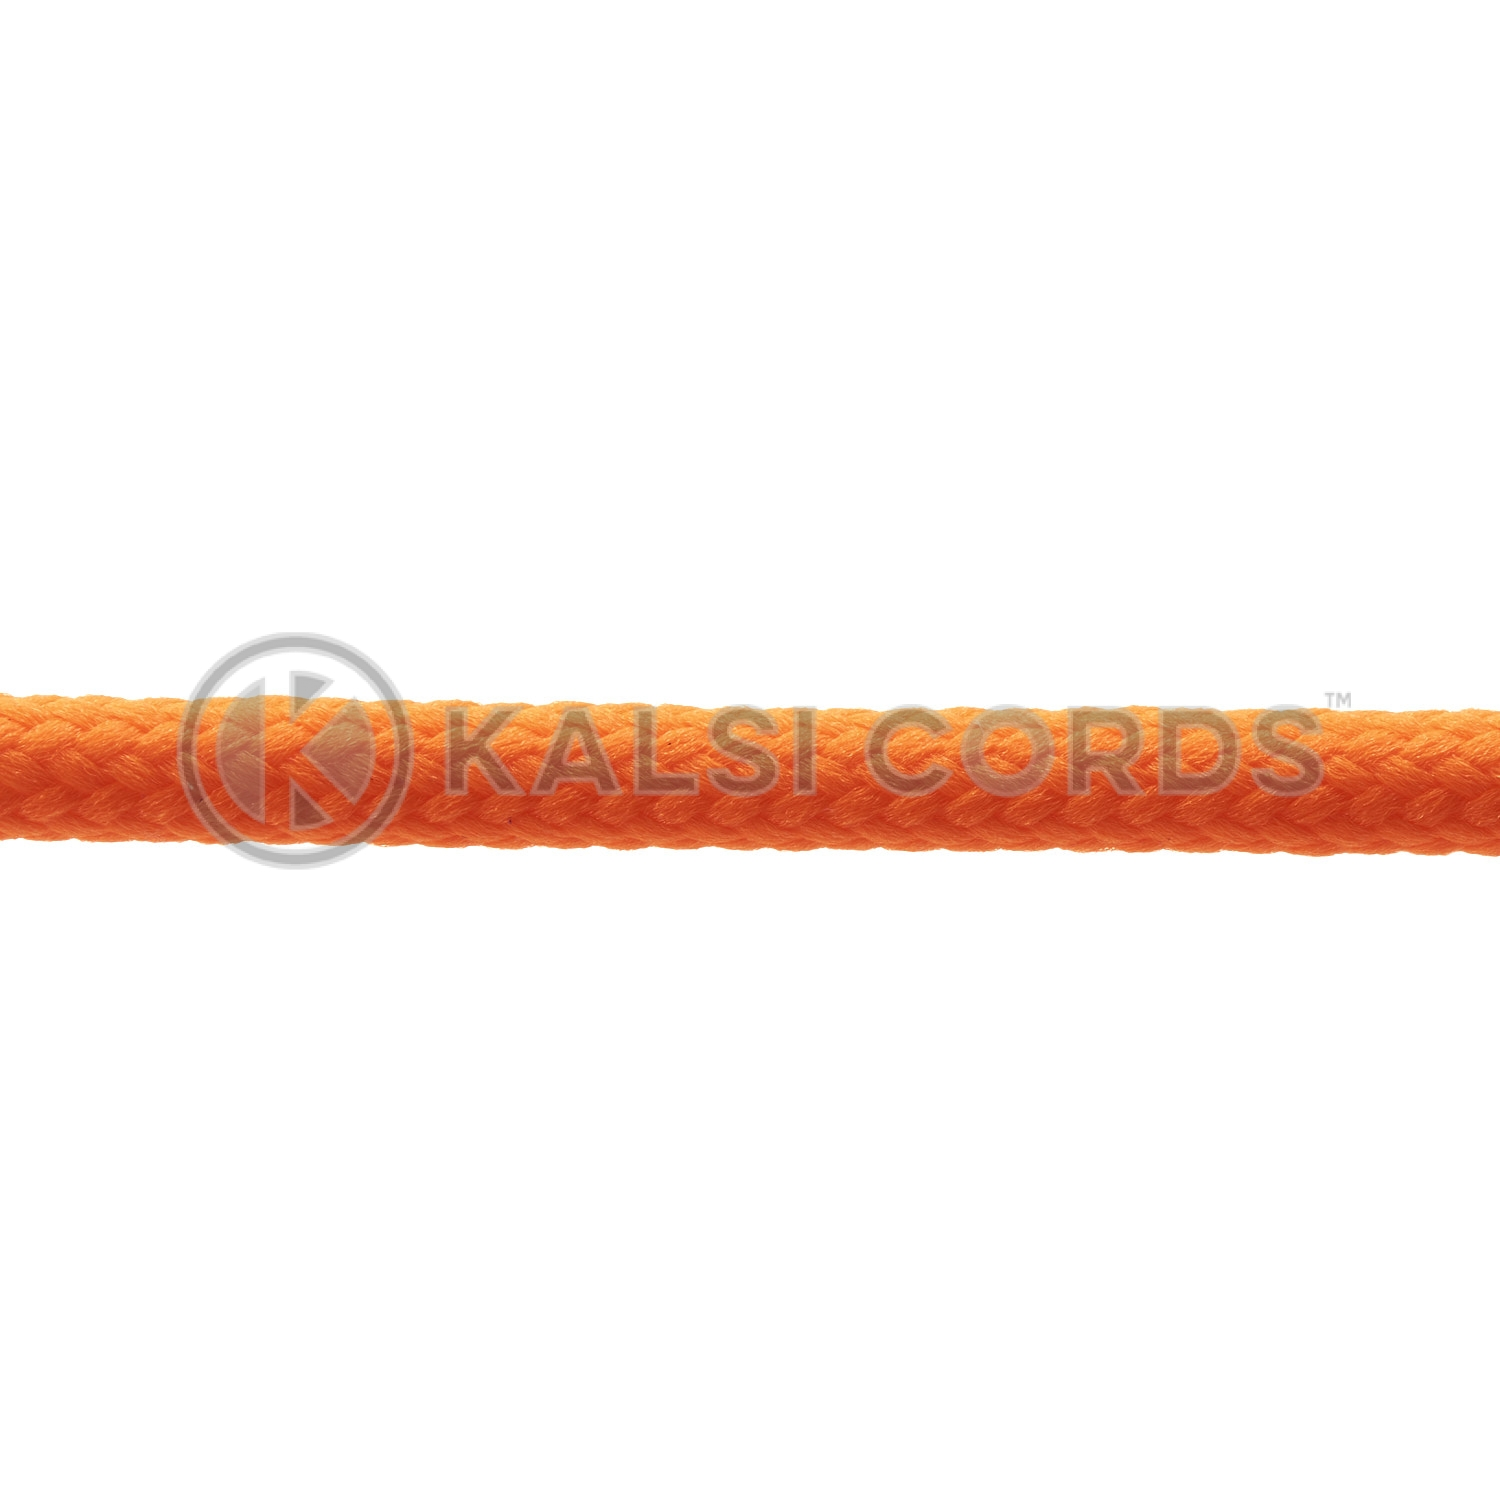 T621 5mm Round Cord Shoe Laces Fluorescent Neon Orange PG050 Kids Trainers Adults Hiking Walking Boots Kalsi Cords